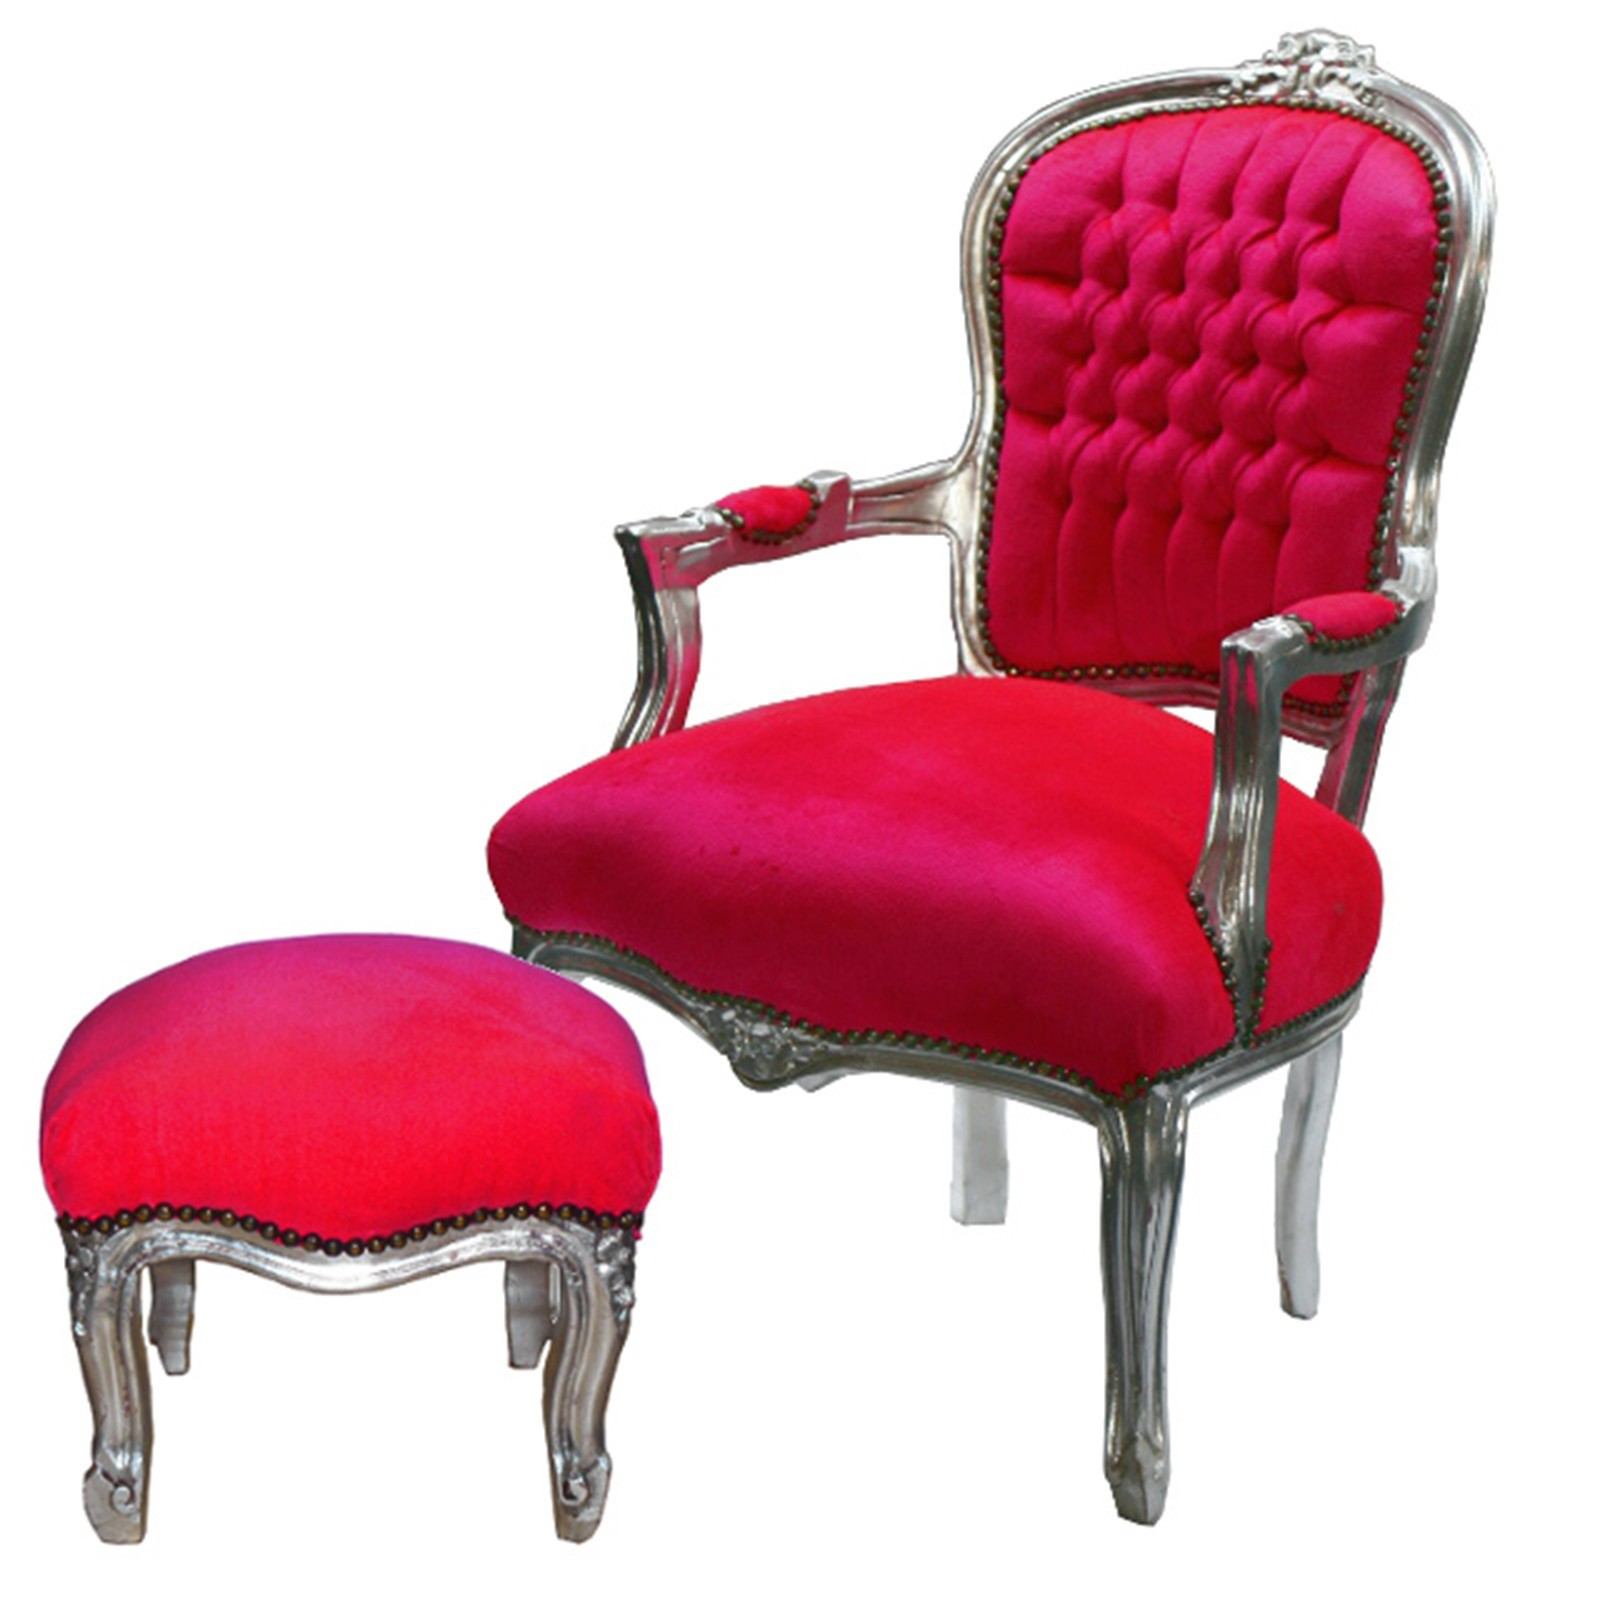 lounge chair barockstuhl pink versilbert sparset hocker sessel pink silber. Black Bedroom Furniture Sets. Home Design Ideas